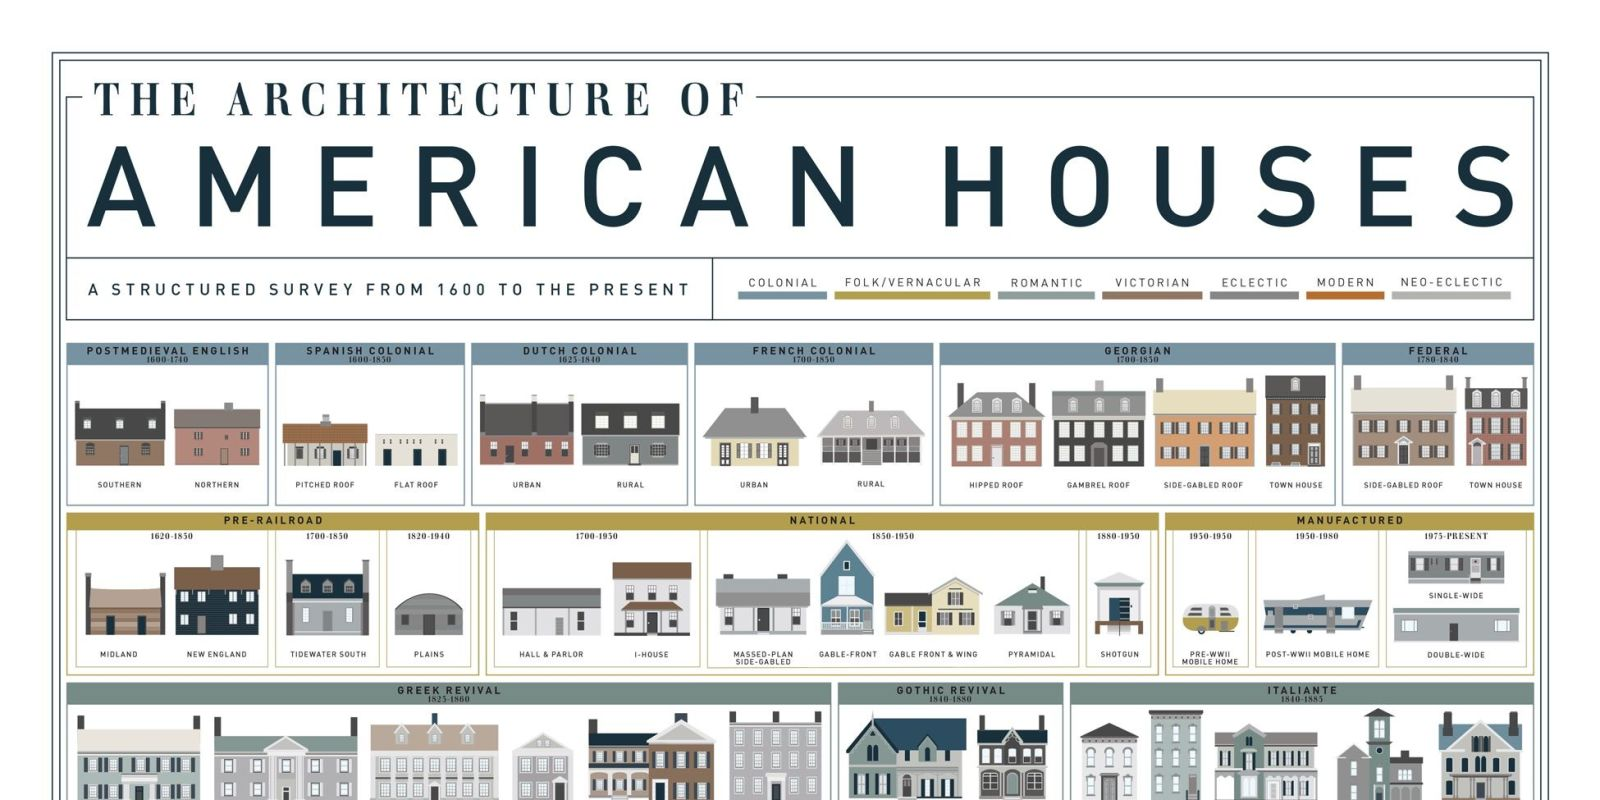 American house styles house architecture for Different house styles pictures